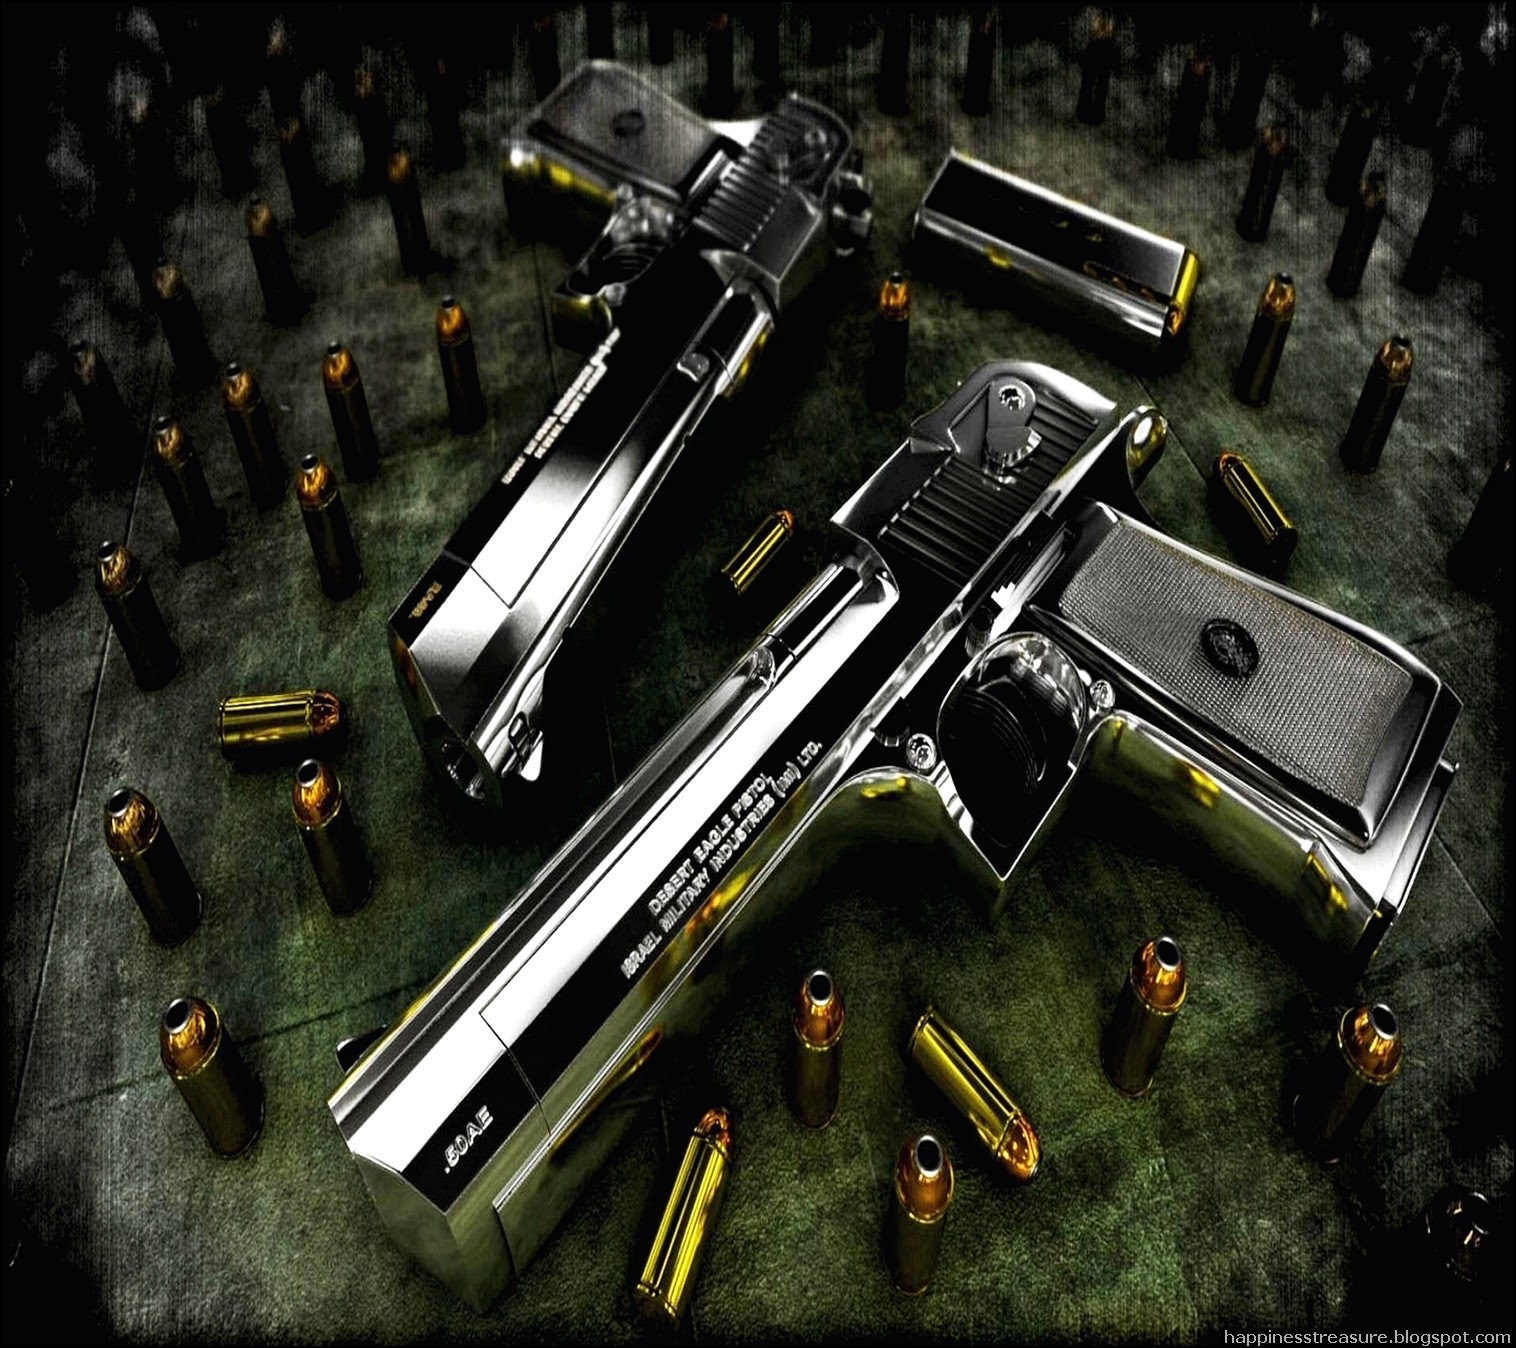 100 <b>Bullet</b> HD <b>Wallpapers</b> | <b>Backgrounds</b> - <b>Wallpaper</b> Abyss